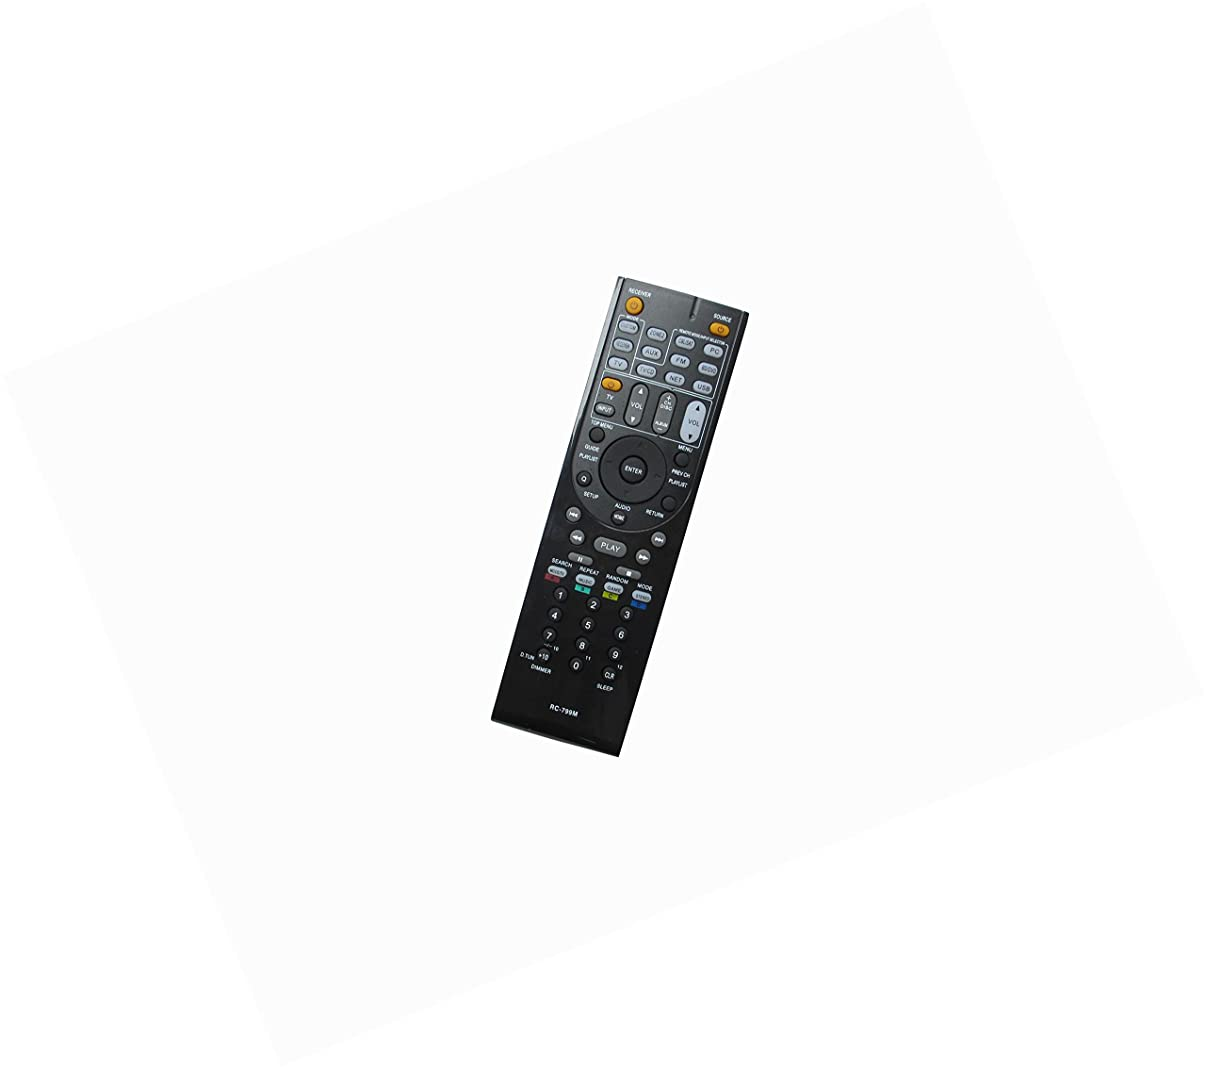 Hotsmtbang Replacement Remote Control for Onkyo TX-SR702E RC-647M RC-607M HT-R520 HT-S9300THX HT-SR508 TX-NR616 TX-NR414 RC-836M TX-SA578 RC-707M Audio Video AV Receiver System